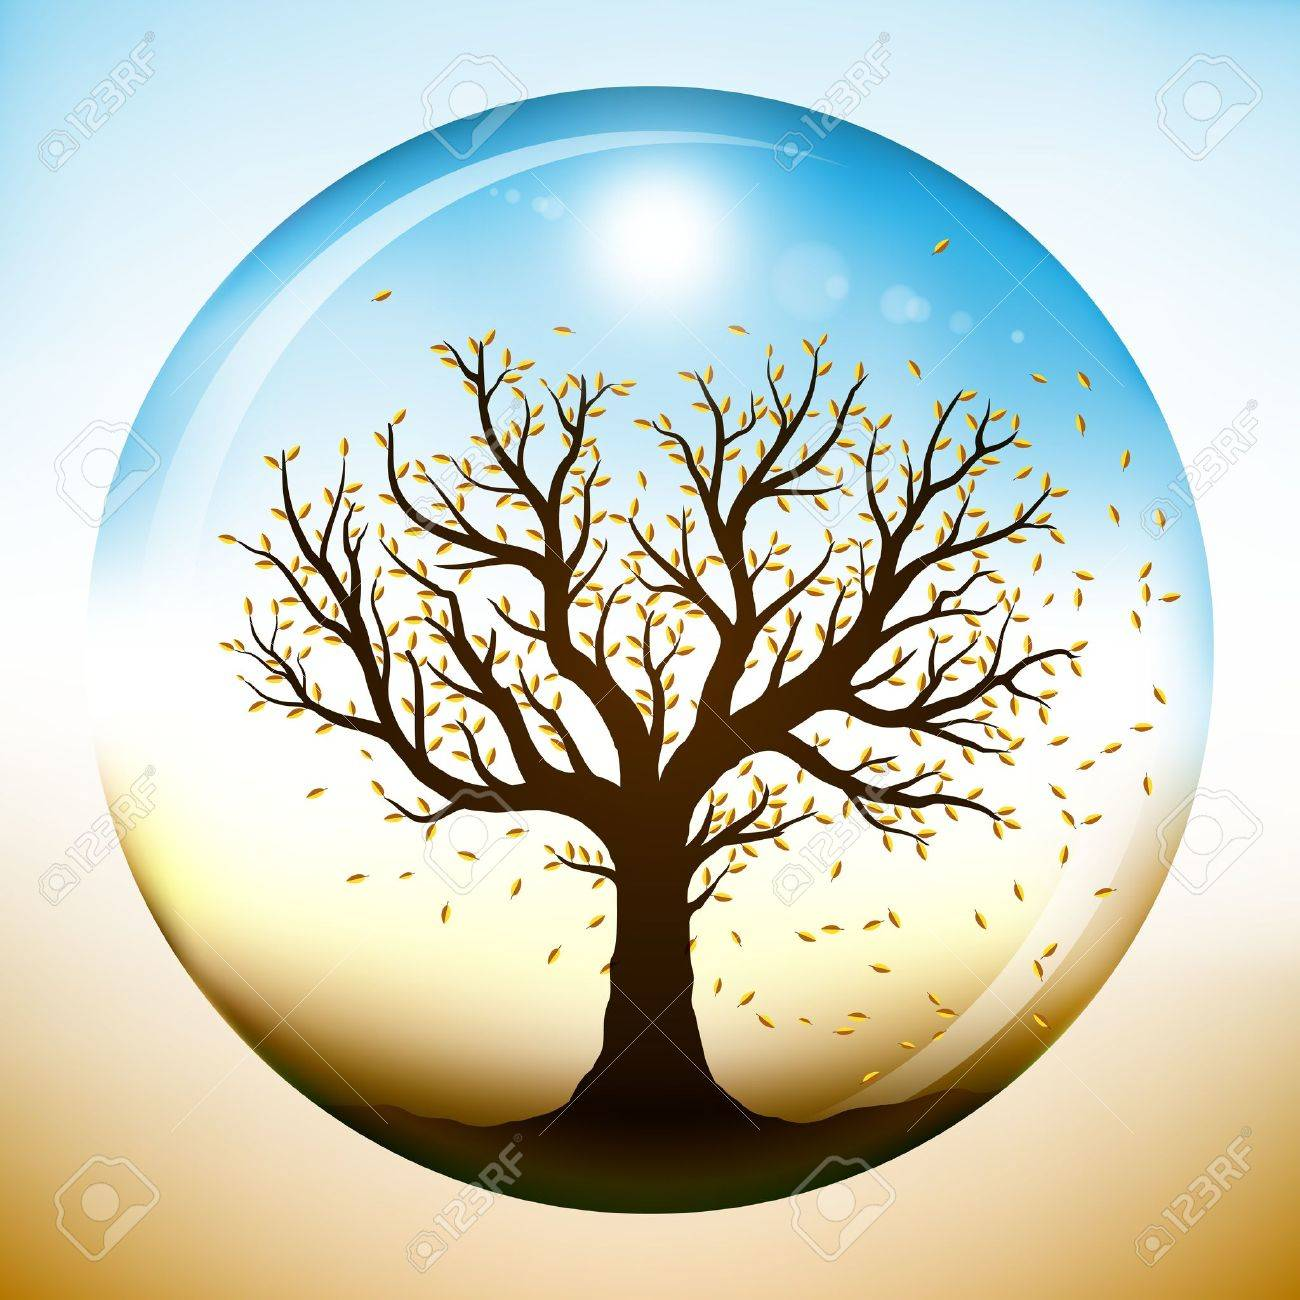 Autumn tree with falling yellow leaves, closed inside a glass sphere - 11299248